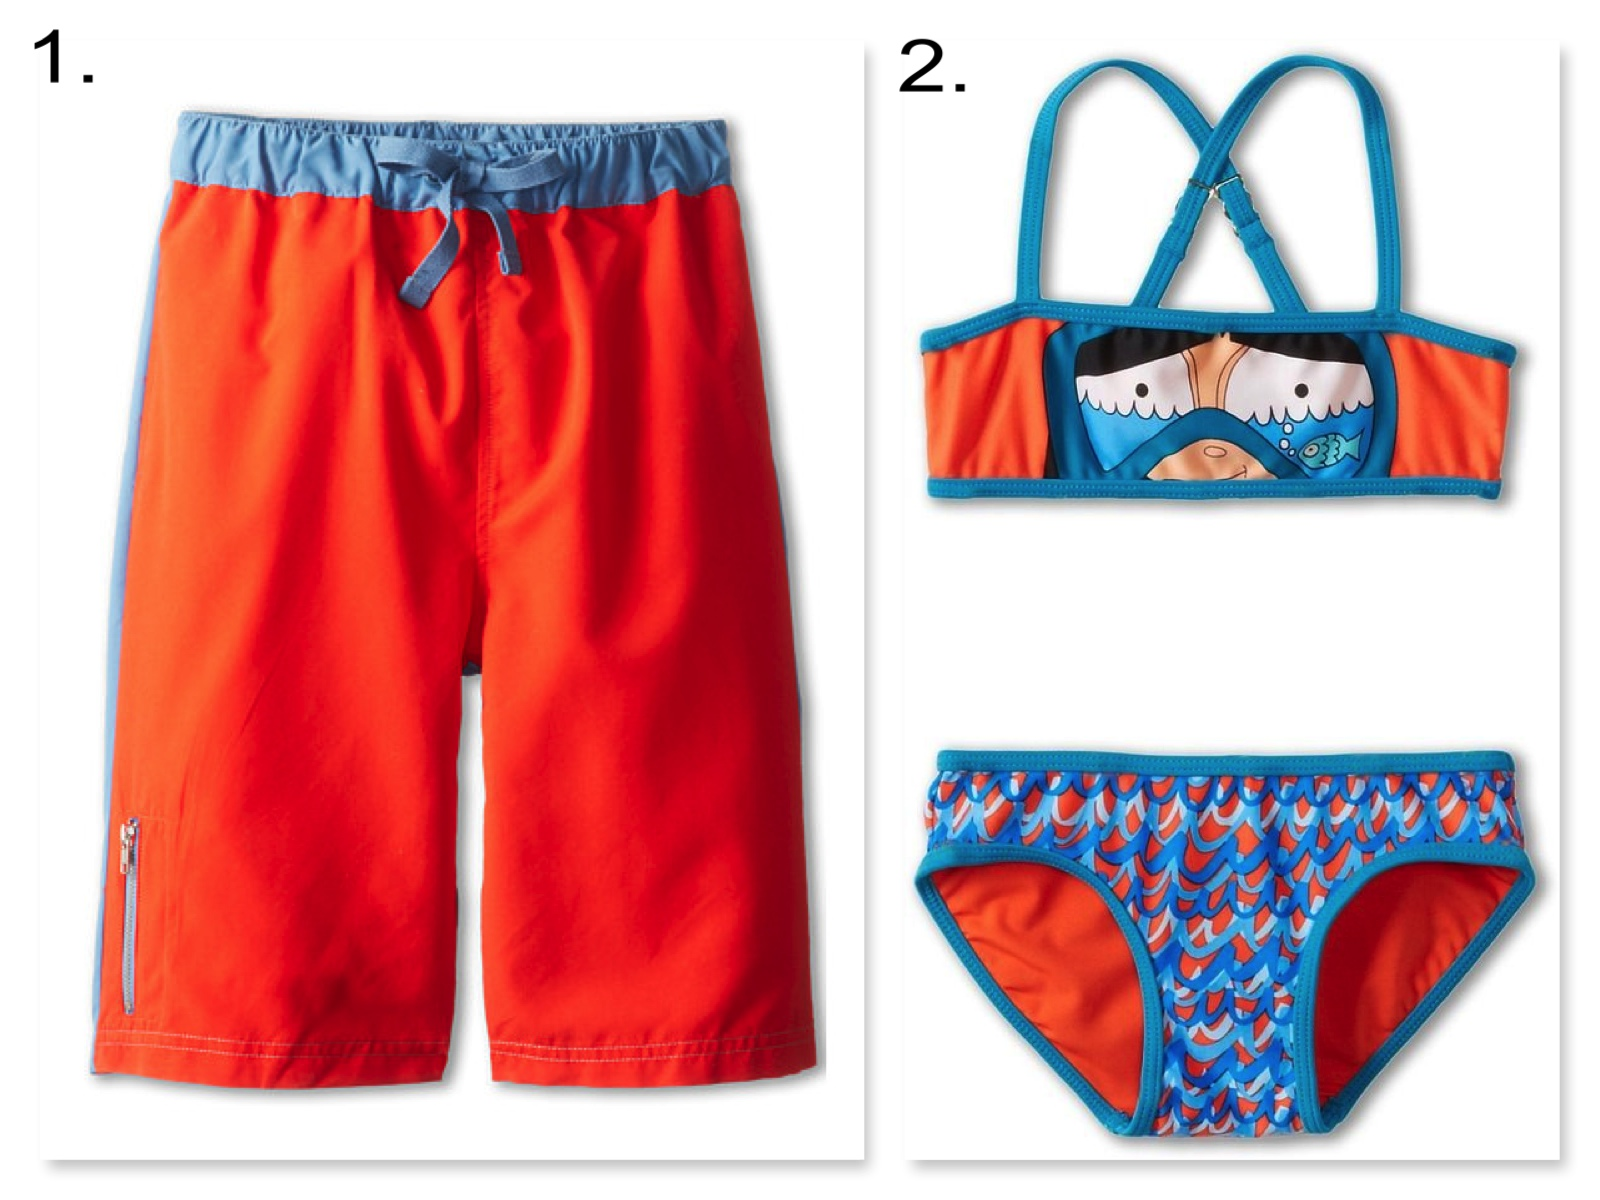 Your little ones will be colorful cuties in these hot lava & turquoise fun color block & girl's snorkeling Swimsuits.  1. Appaman Kids Contrast Colorblock Swim Trunks  | 2. Little Marc Jacobs Bandeau Top & Classic Bottom Bikini Set